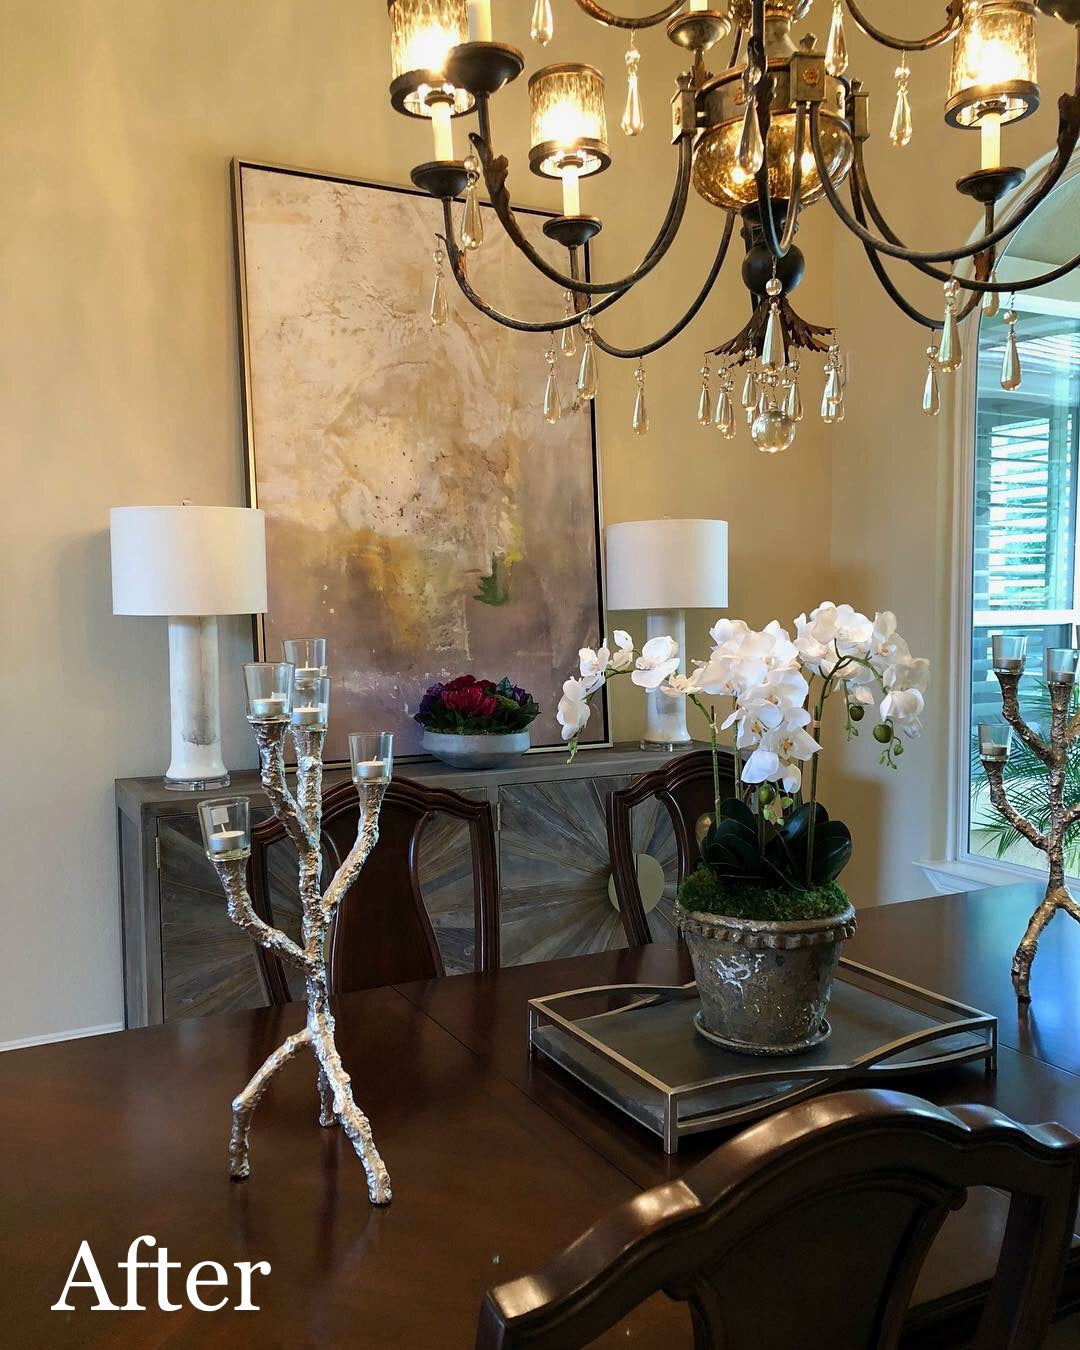 Donna_s_Home_Furnishings_Conroe_Henry_Palma_Interior_Design_Curated_Life_163b_1_.jpeg